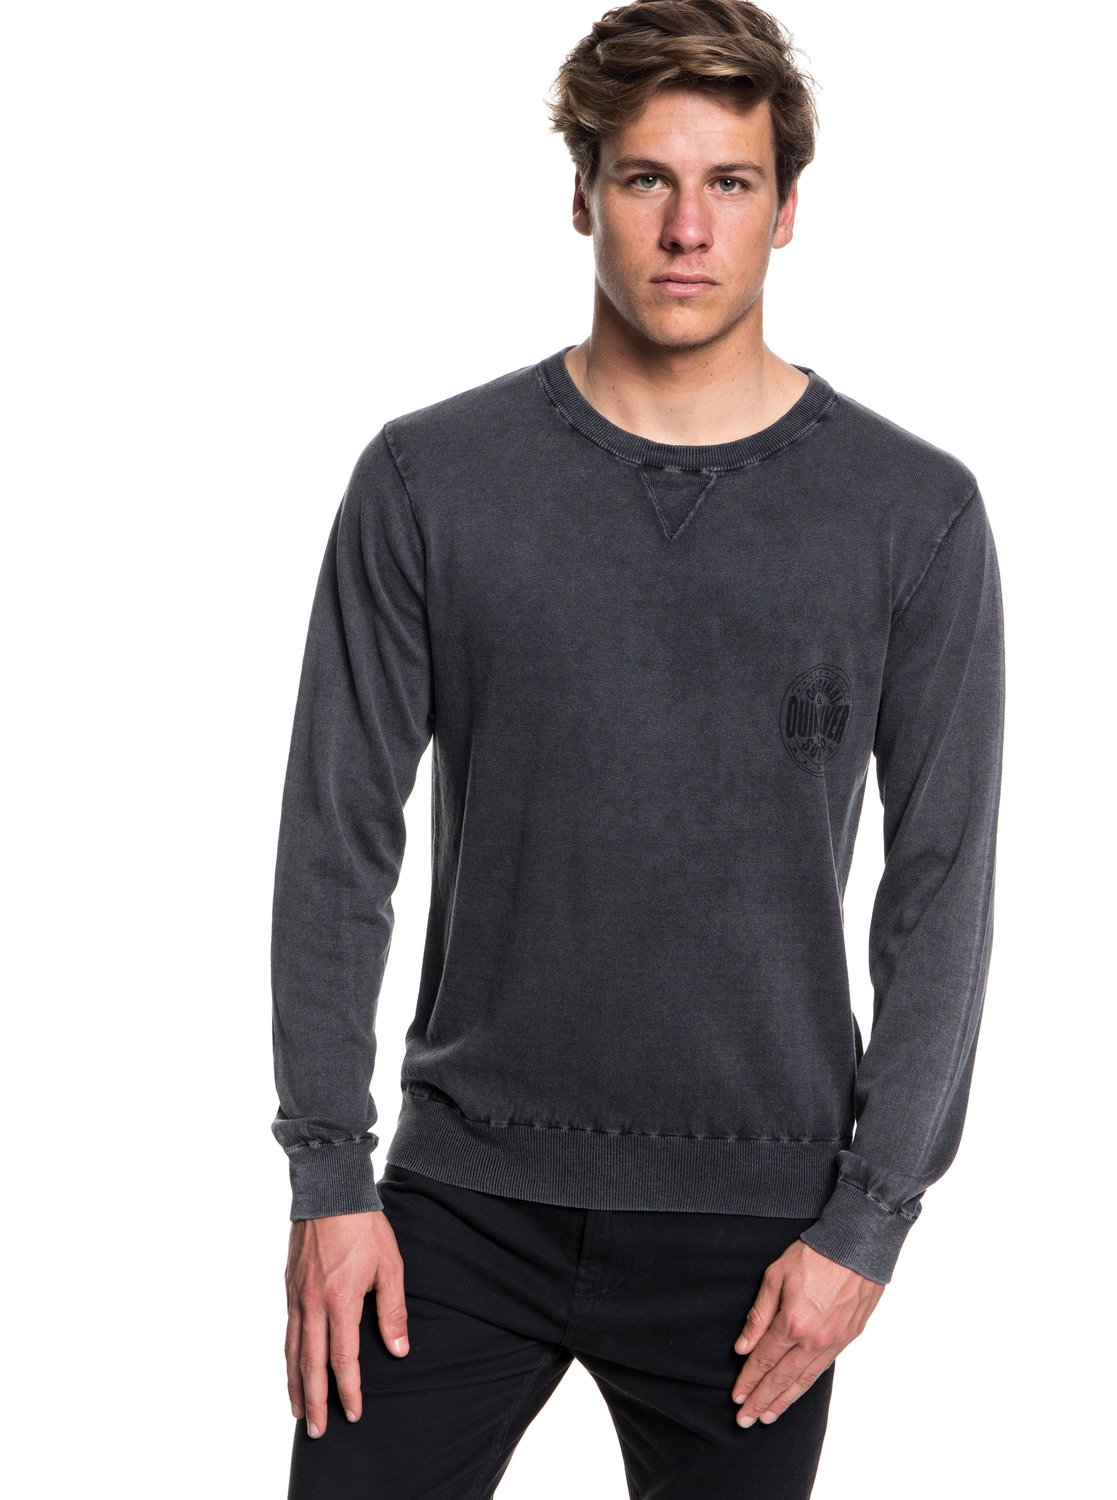 Royaume-Uni disponibilité ed4f5 0b6ea Miyako Reef - Pull col rond pour Homme